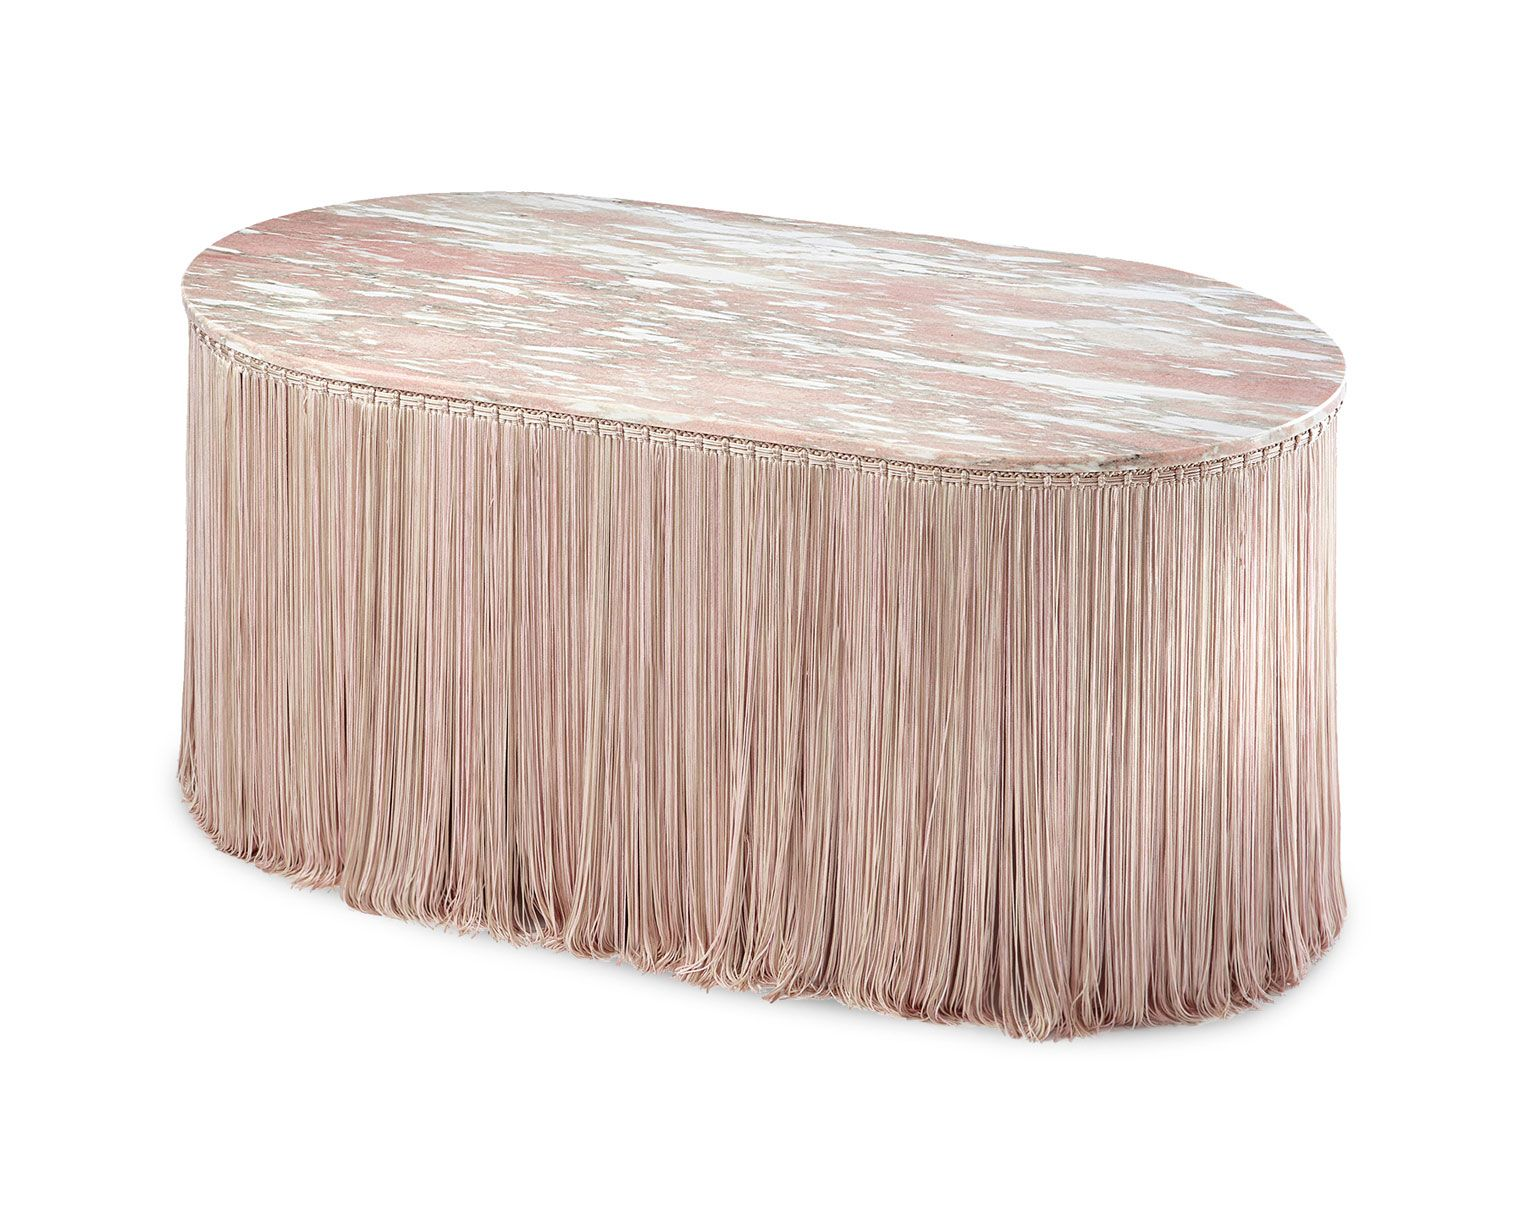 editions milano new tripolino objeto low tables pink marble accent table fringes cristina celestino outdoor coffee clearance half moon mirrored pottery barn kitchen dining room